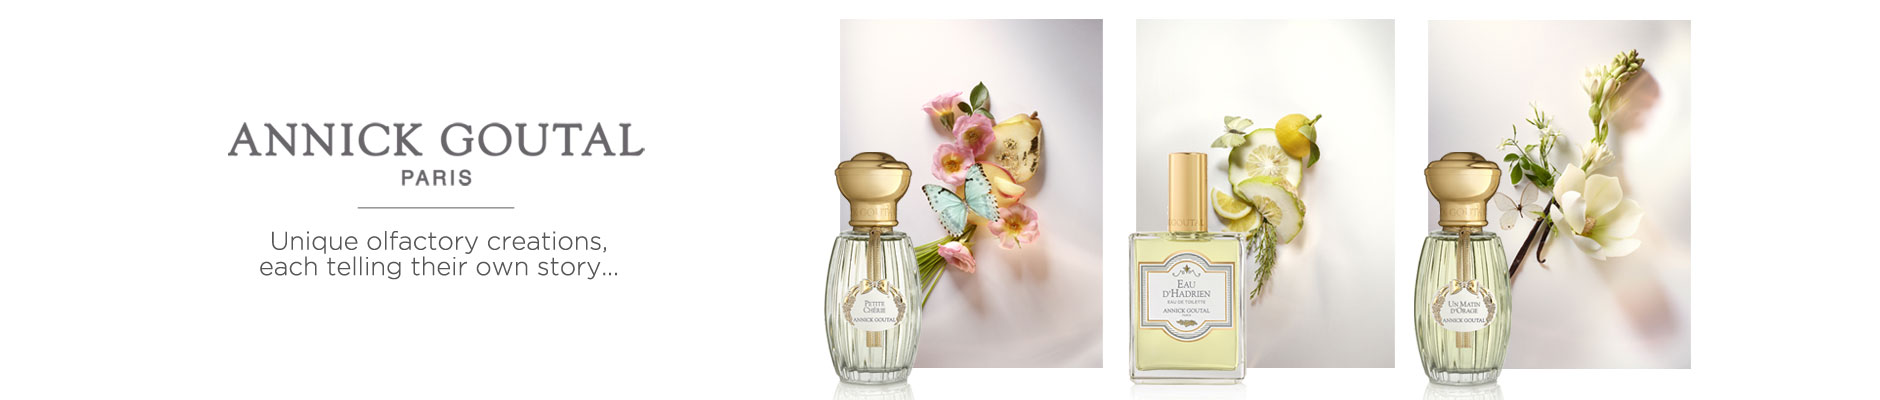 Annick Goutal Paris - Unique olfactory creations, each telling their own story...